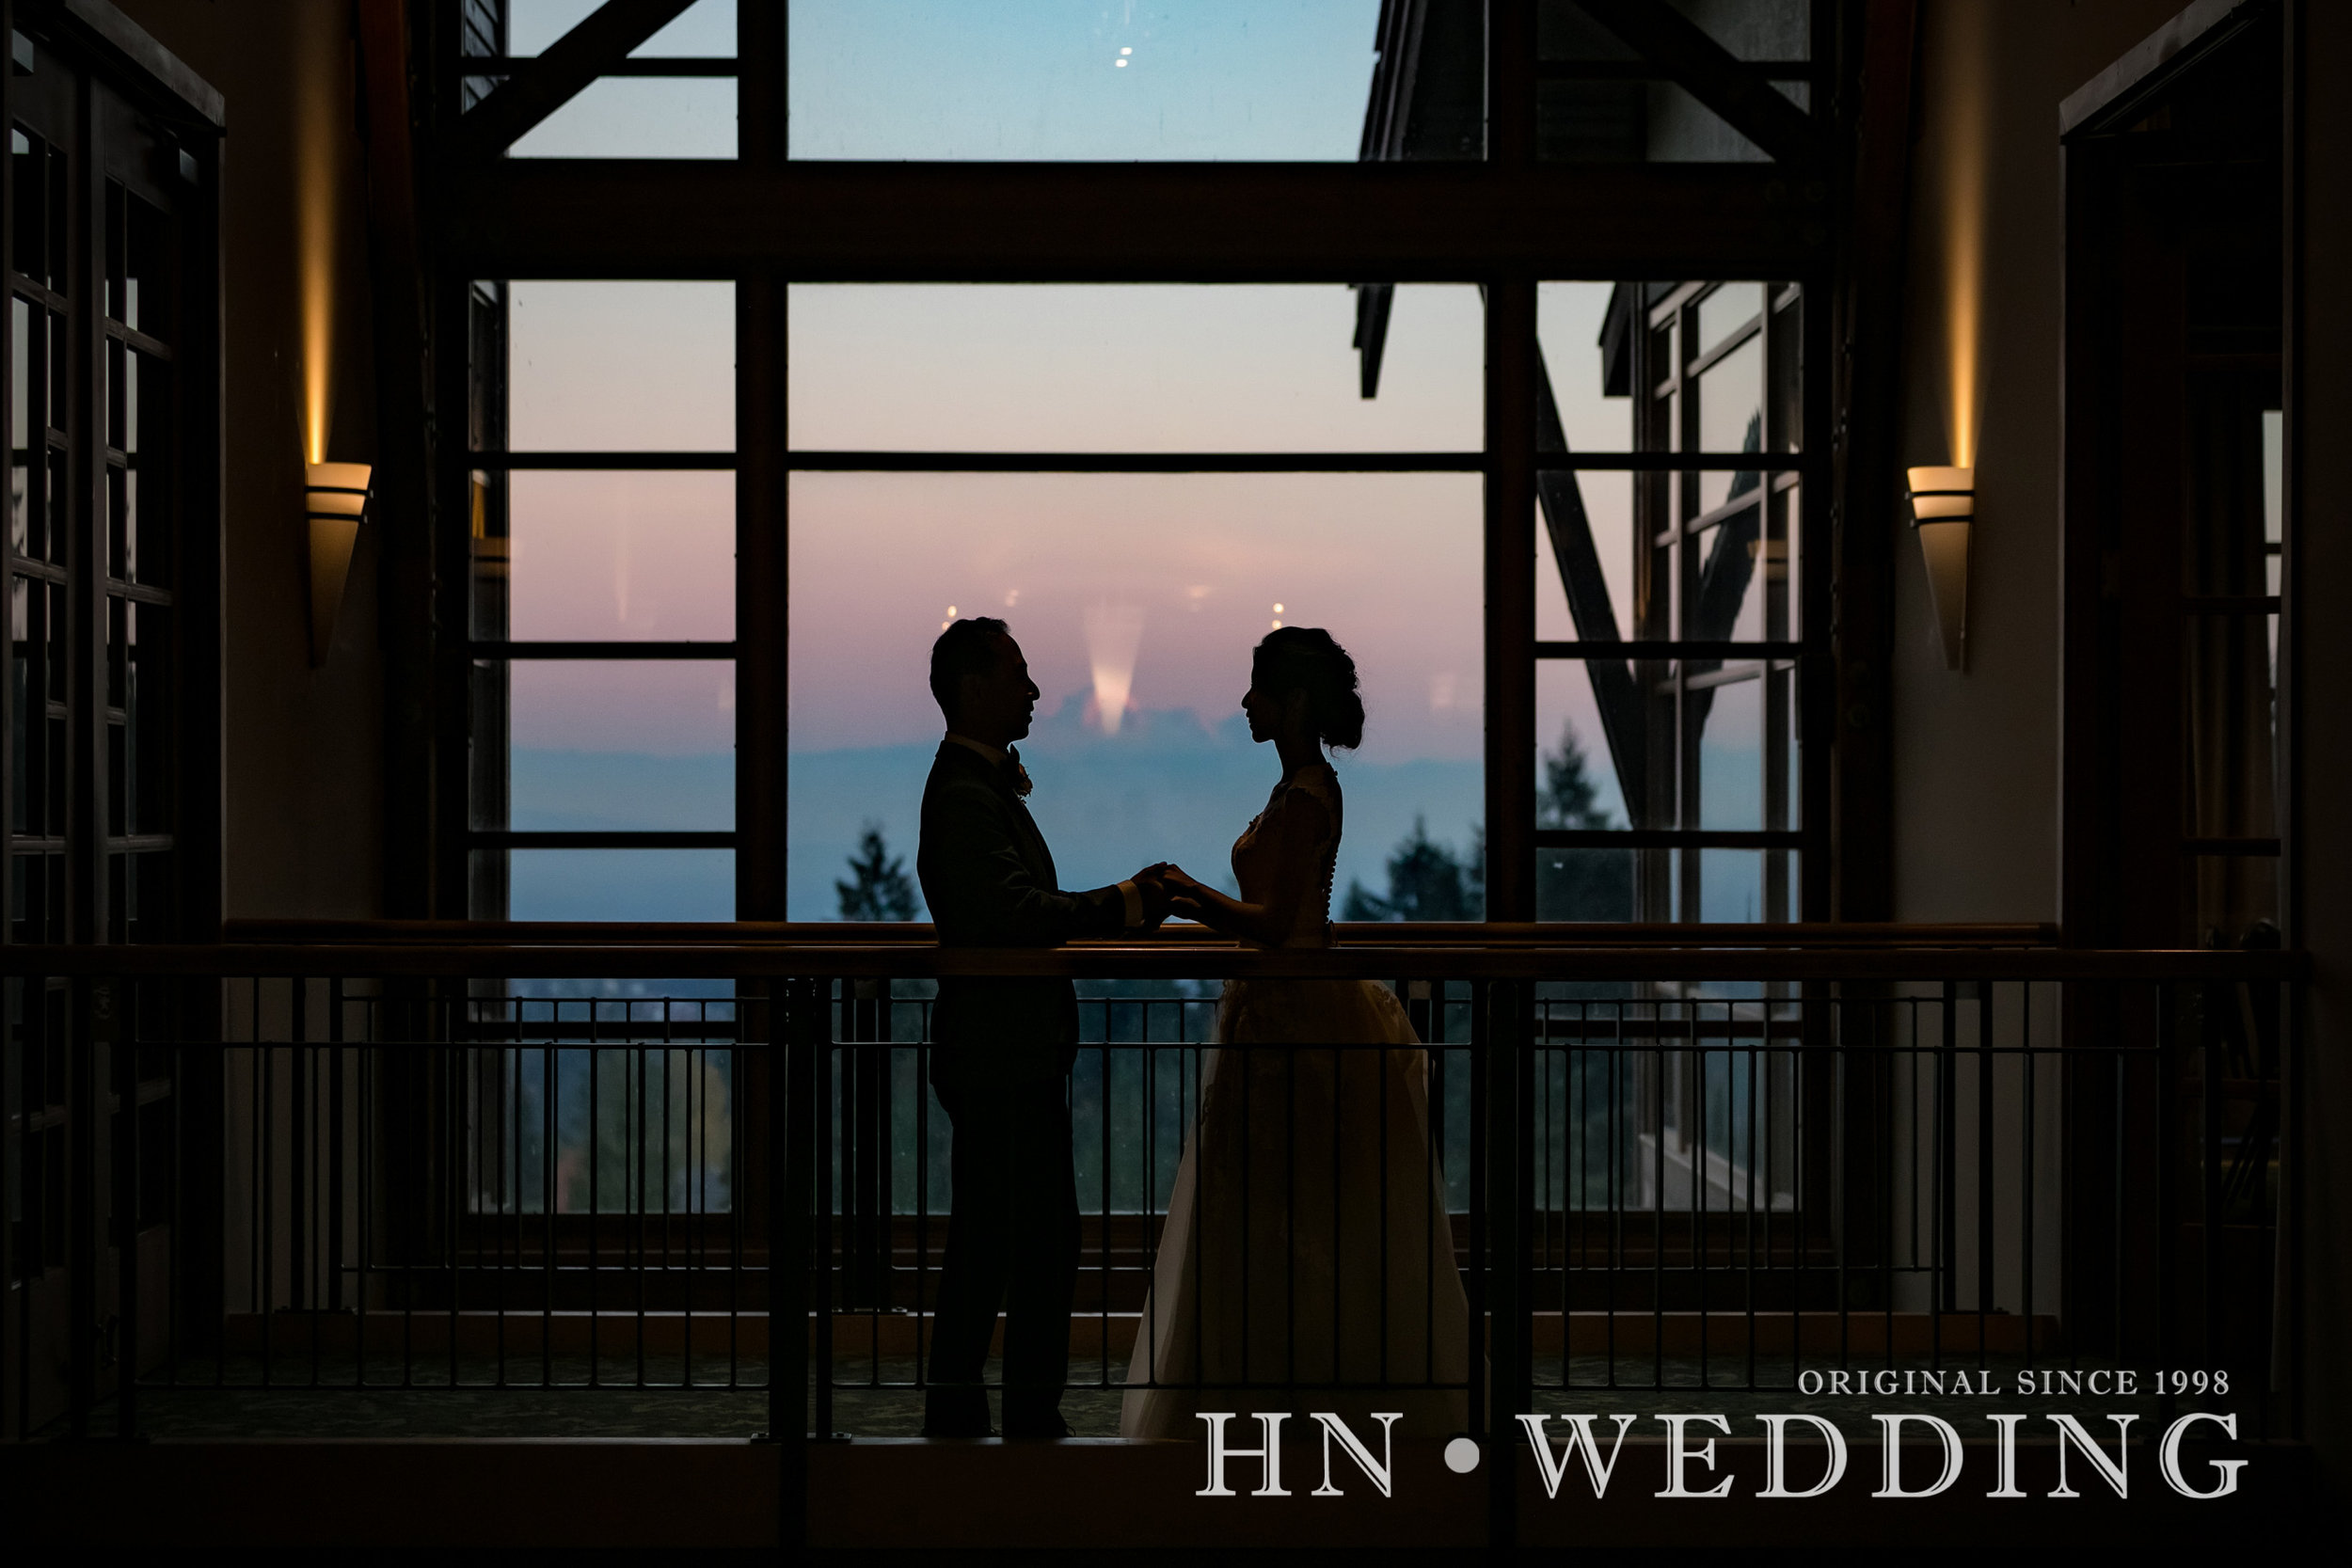 hnweddingweddingday20180526.jpg